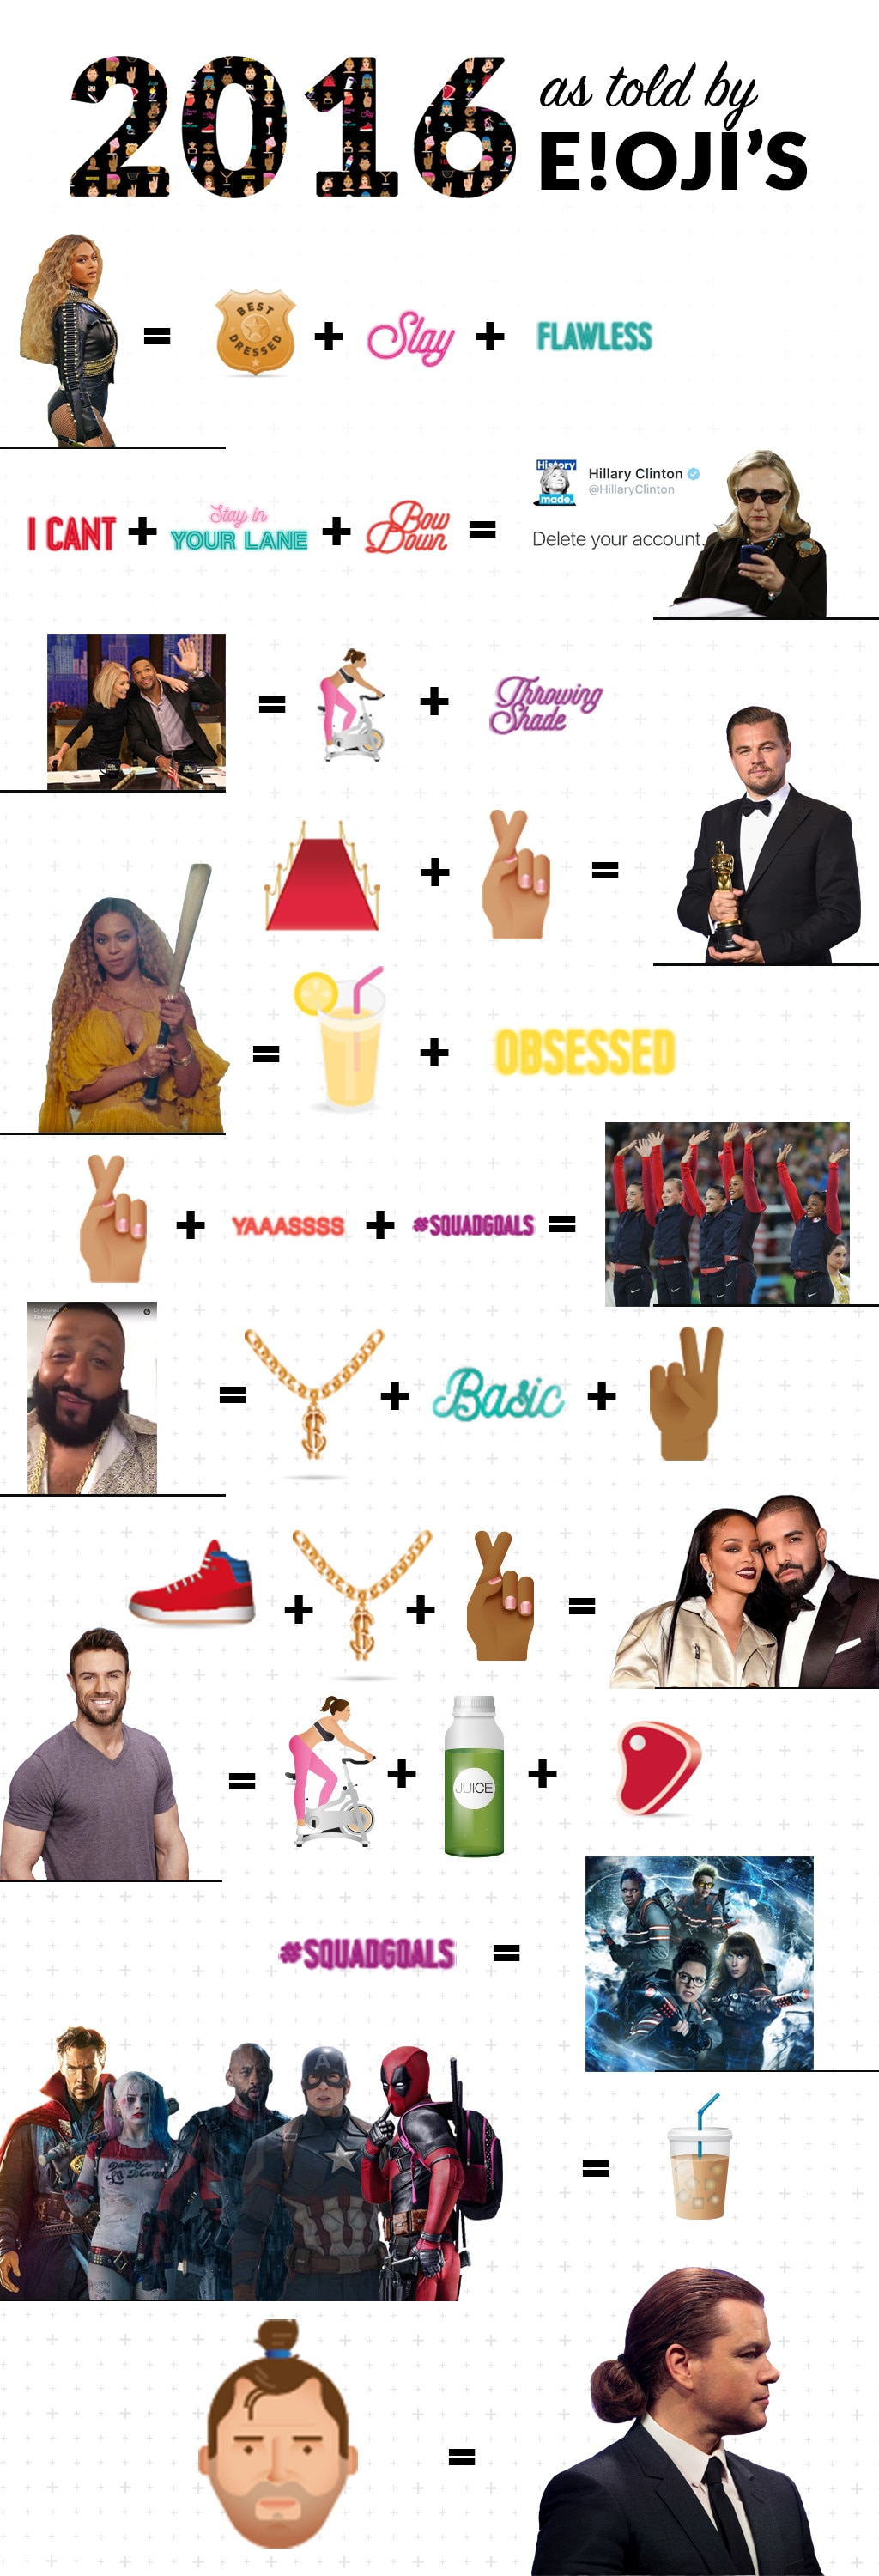 2016 as Told by E!ojis